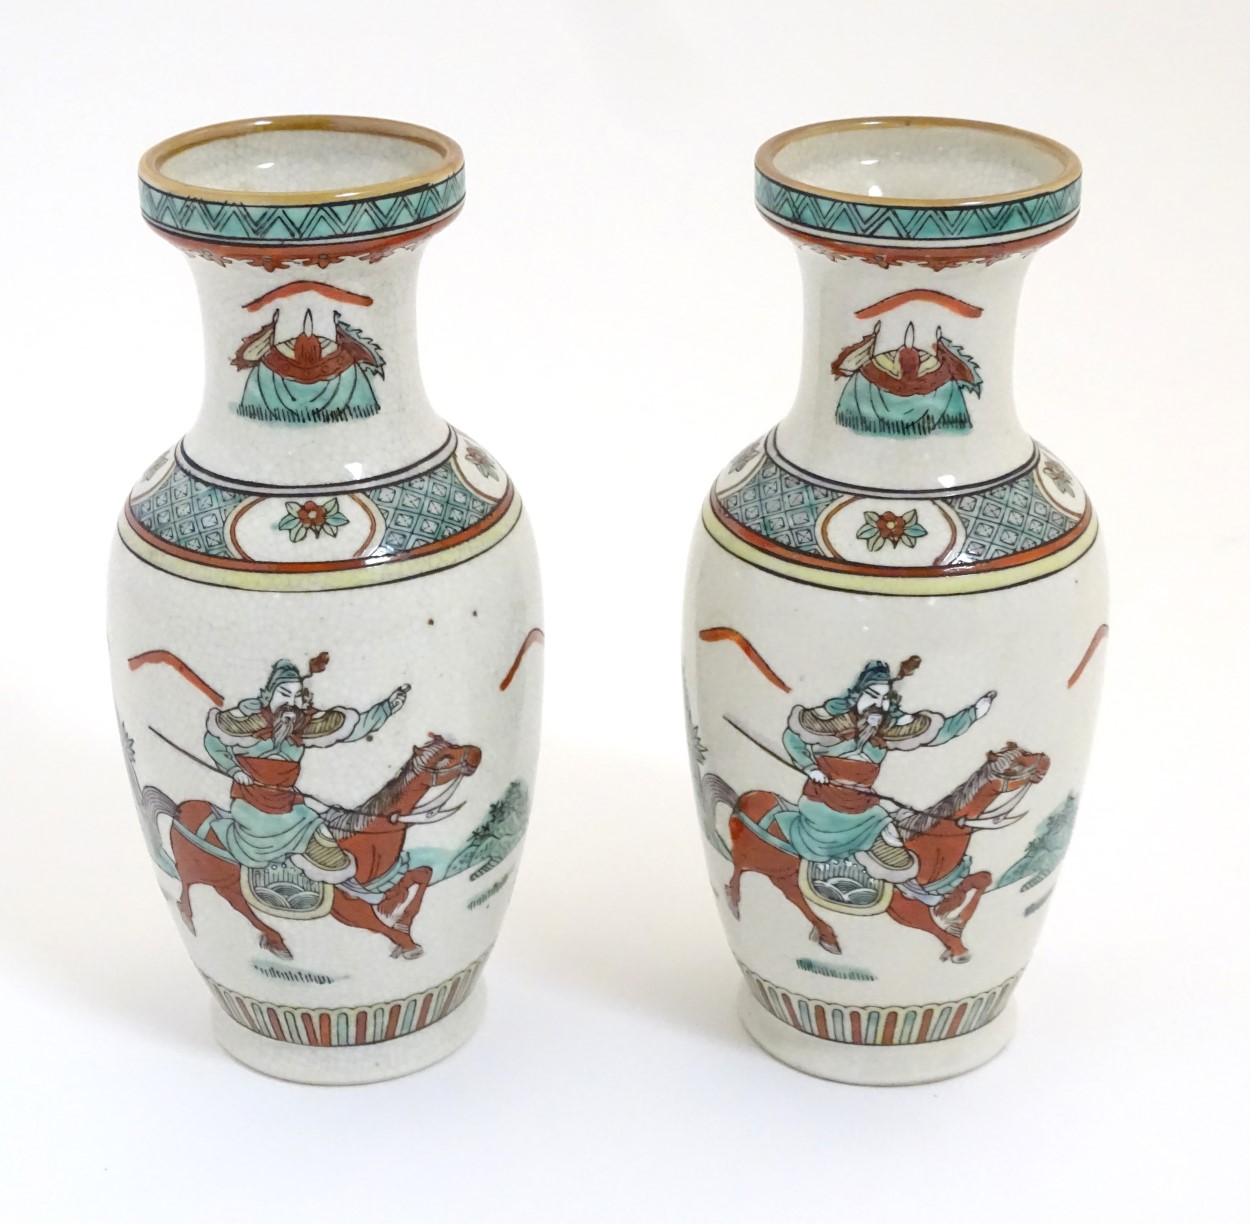 Lot 9 - A pair of Chinese rouleau vases decorated with a figure on horseback and a figure with a flag.